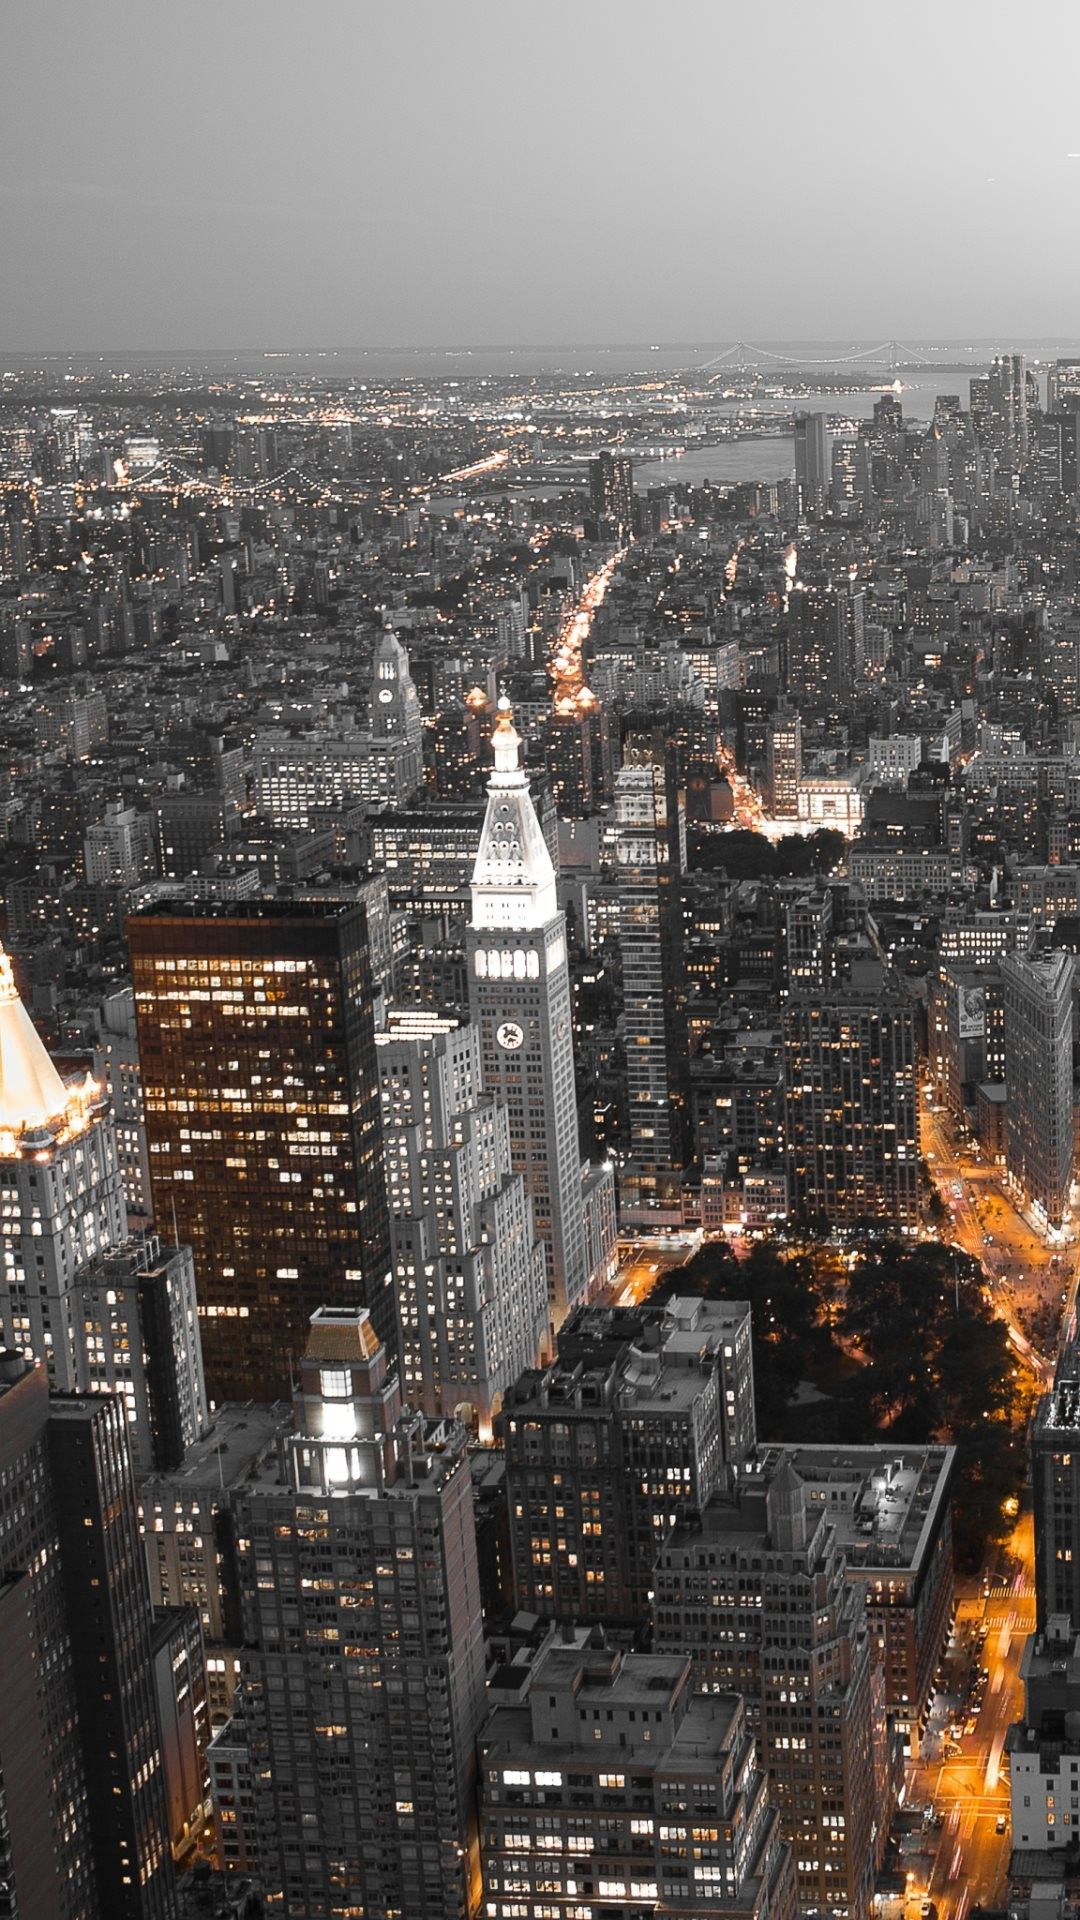 Cool City Lights 4k Hd Android And Iphone Wallpaper Background And Lockscreen Gambar